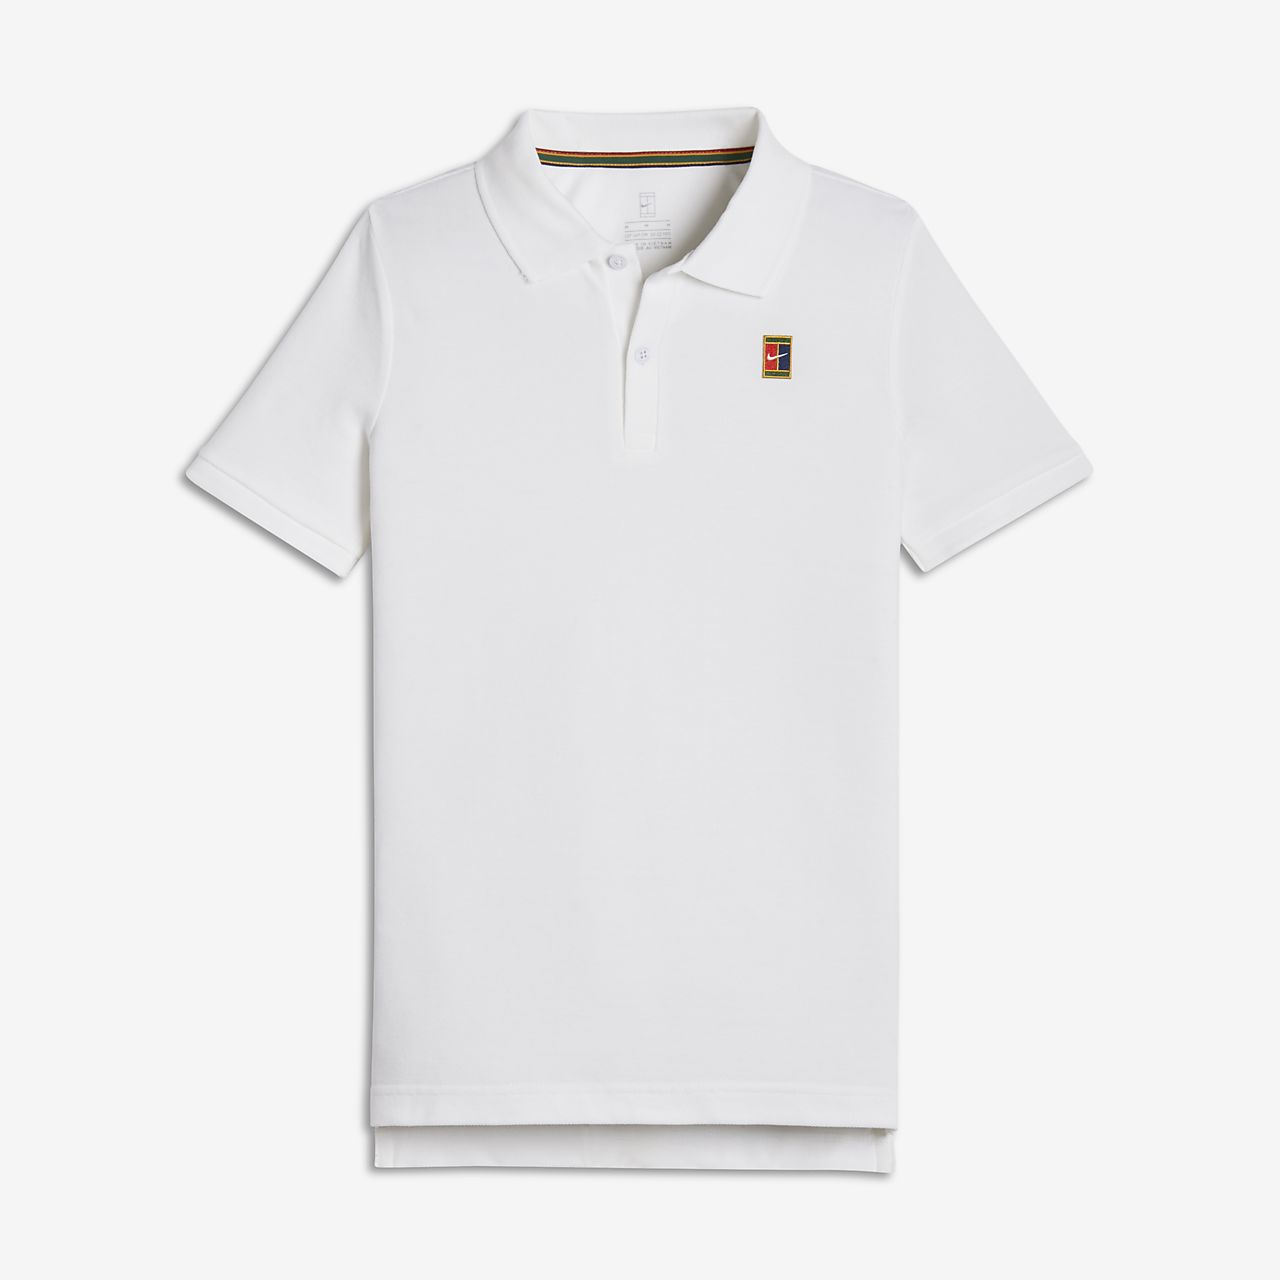 NikeCourt Older Kids' (Boys') Tennis Polo